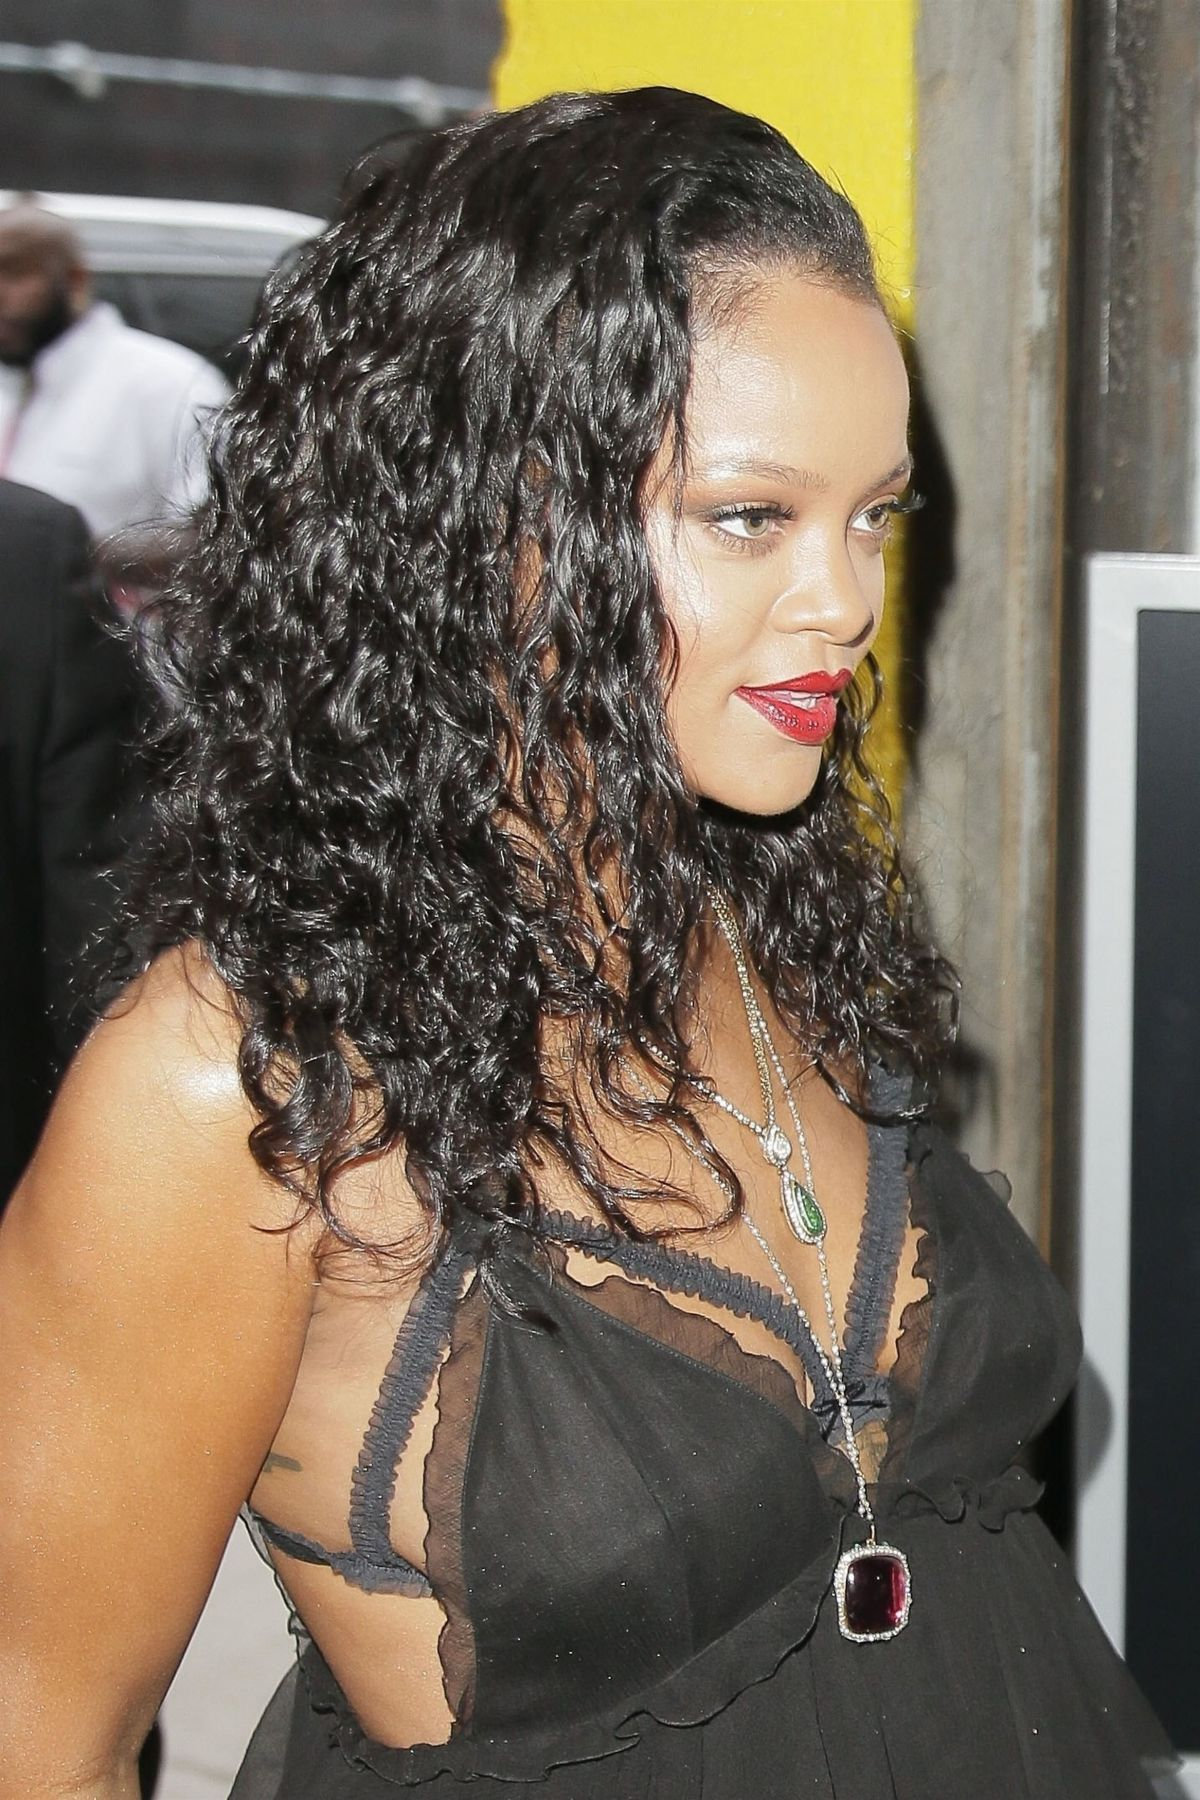 3334302a9 RIHANNA at Savage x Fenty Lingerie Launch Party 05 10 2018 - HawtCelebs